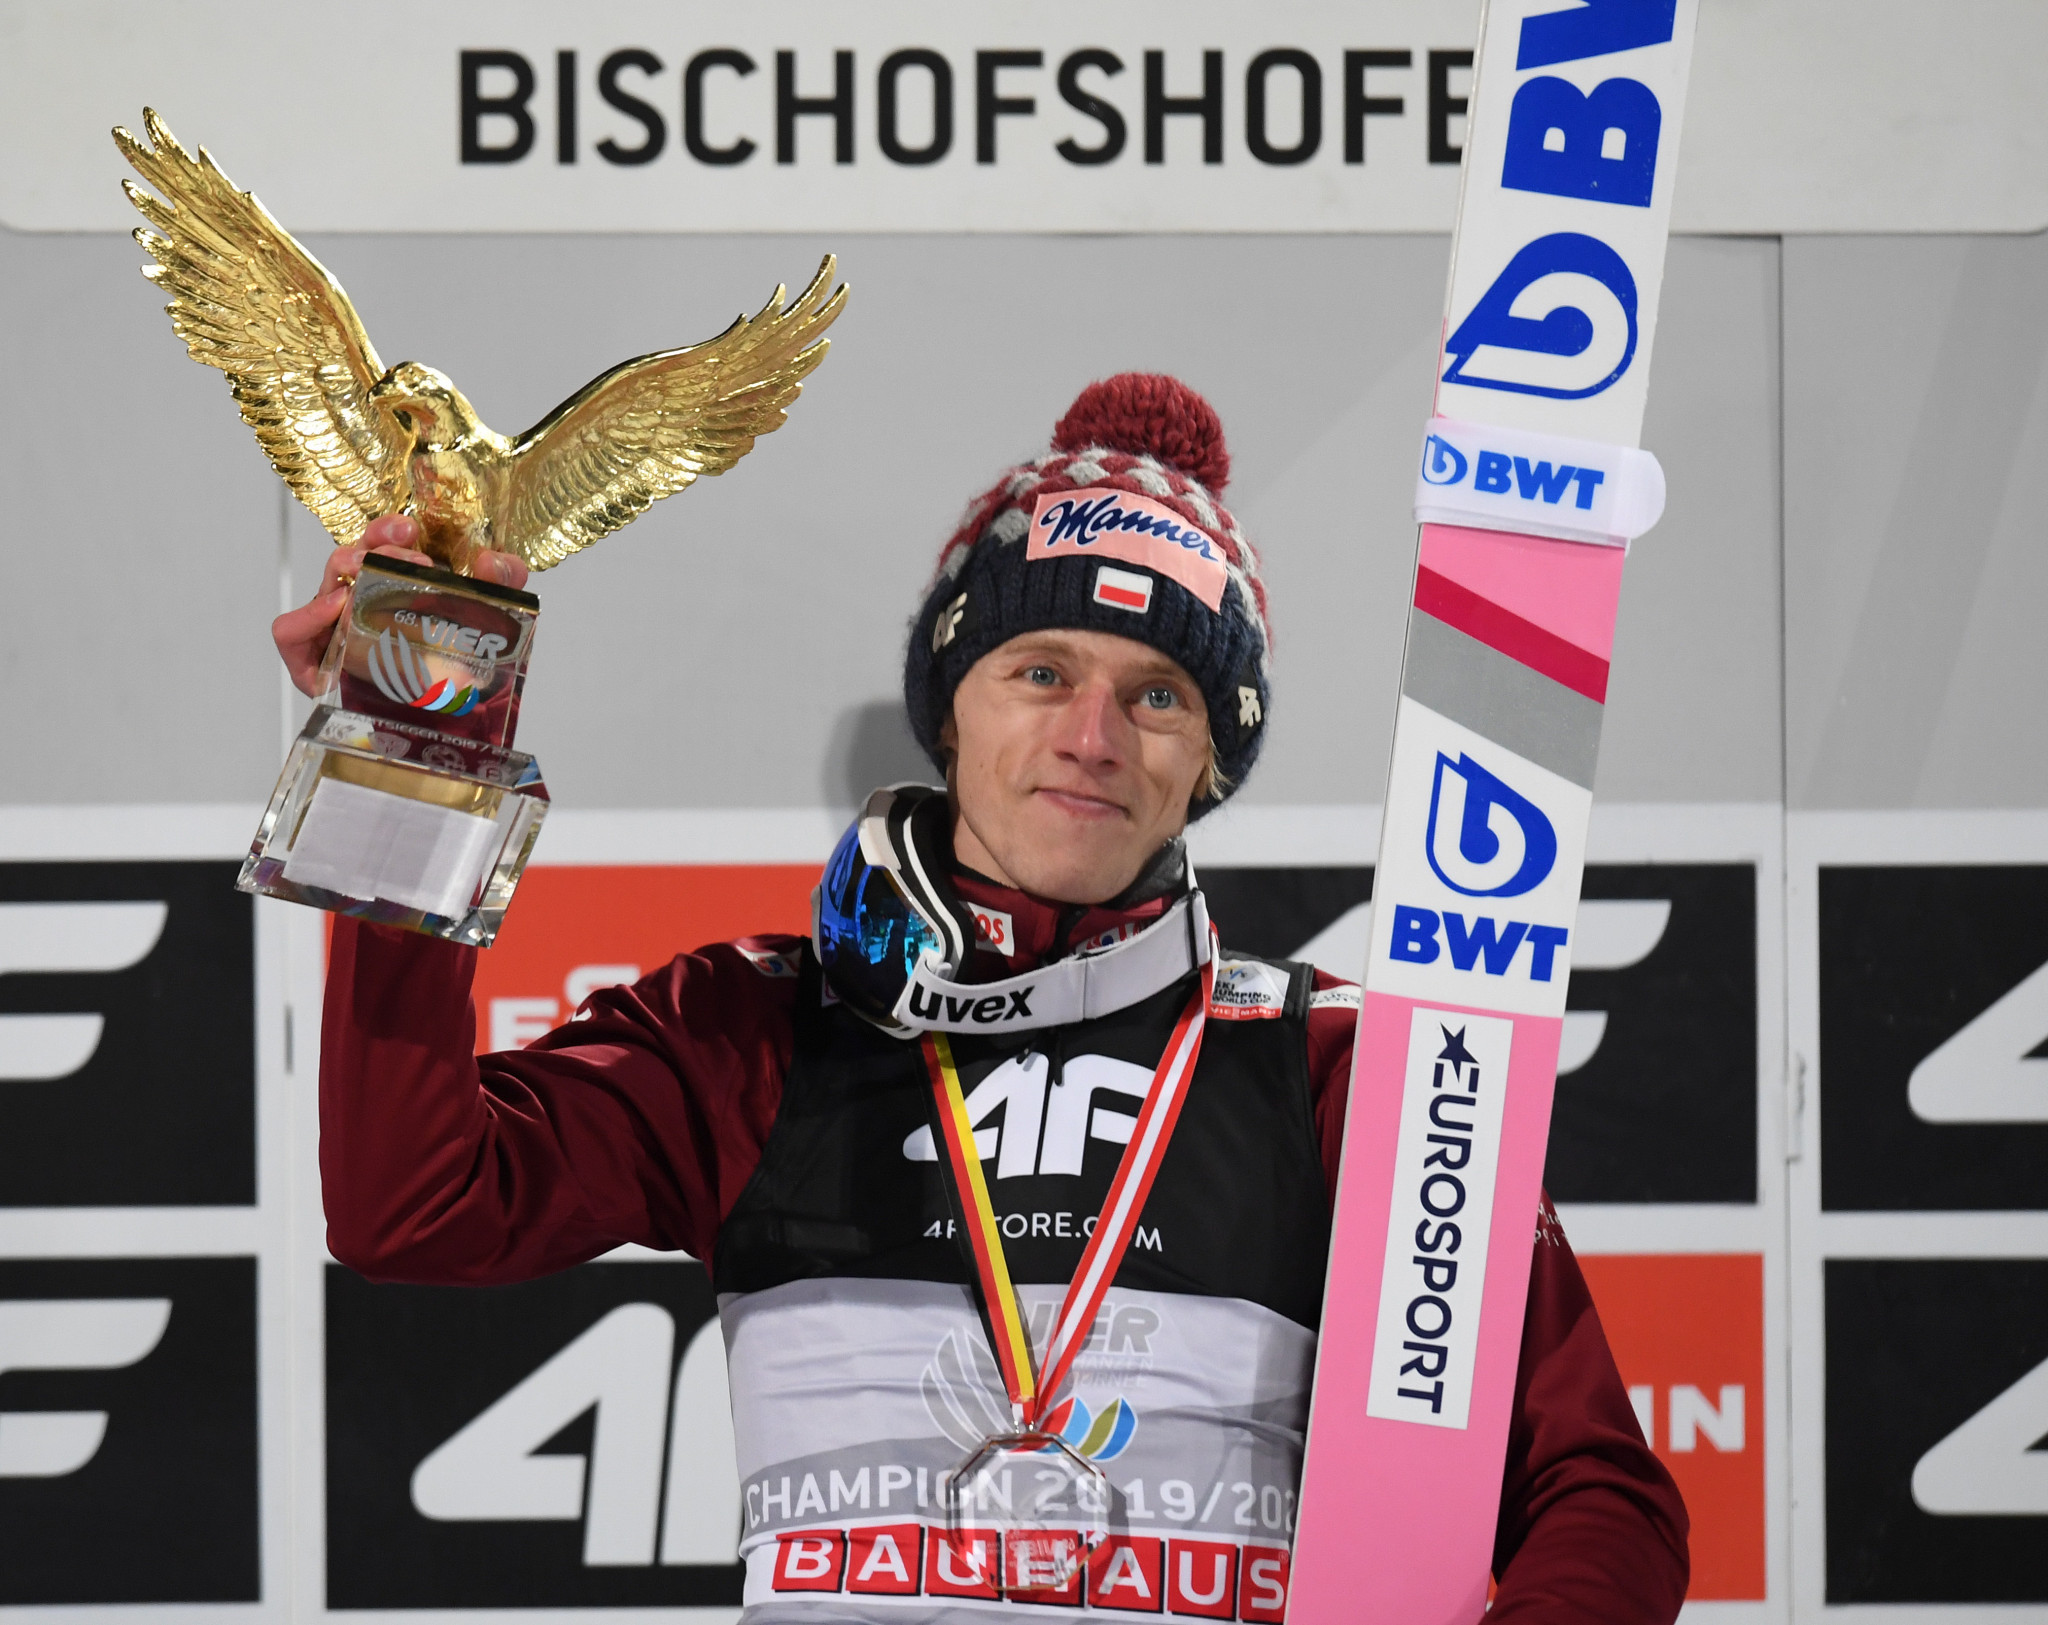 Kubacki claims maiden Four Hills Tournament crown after win in Bischofshofen